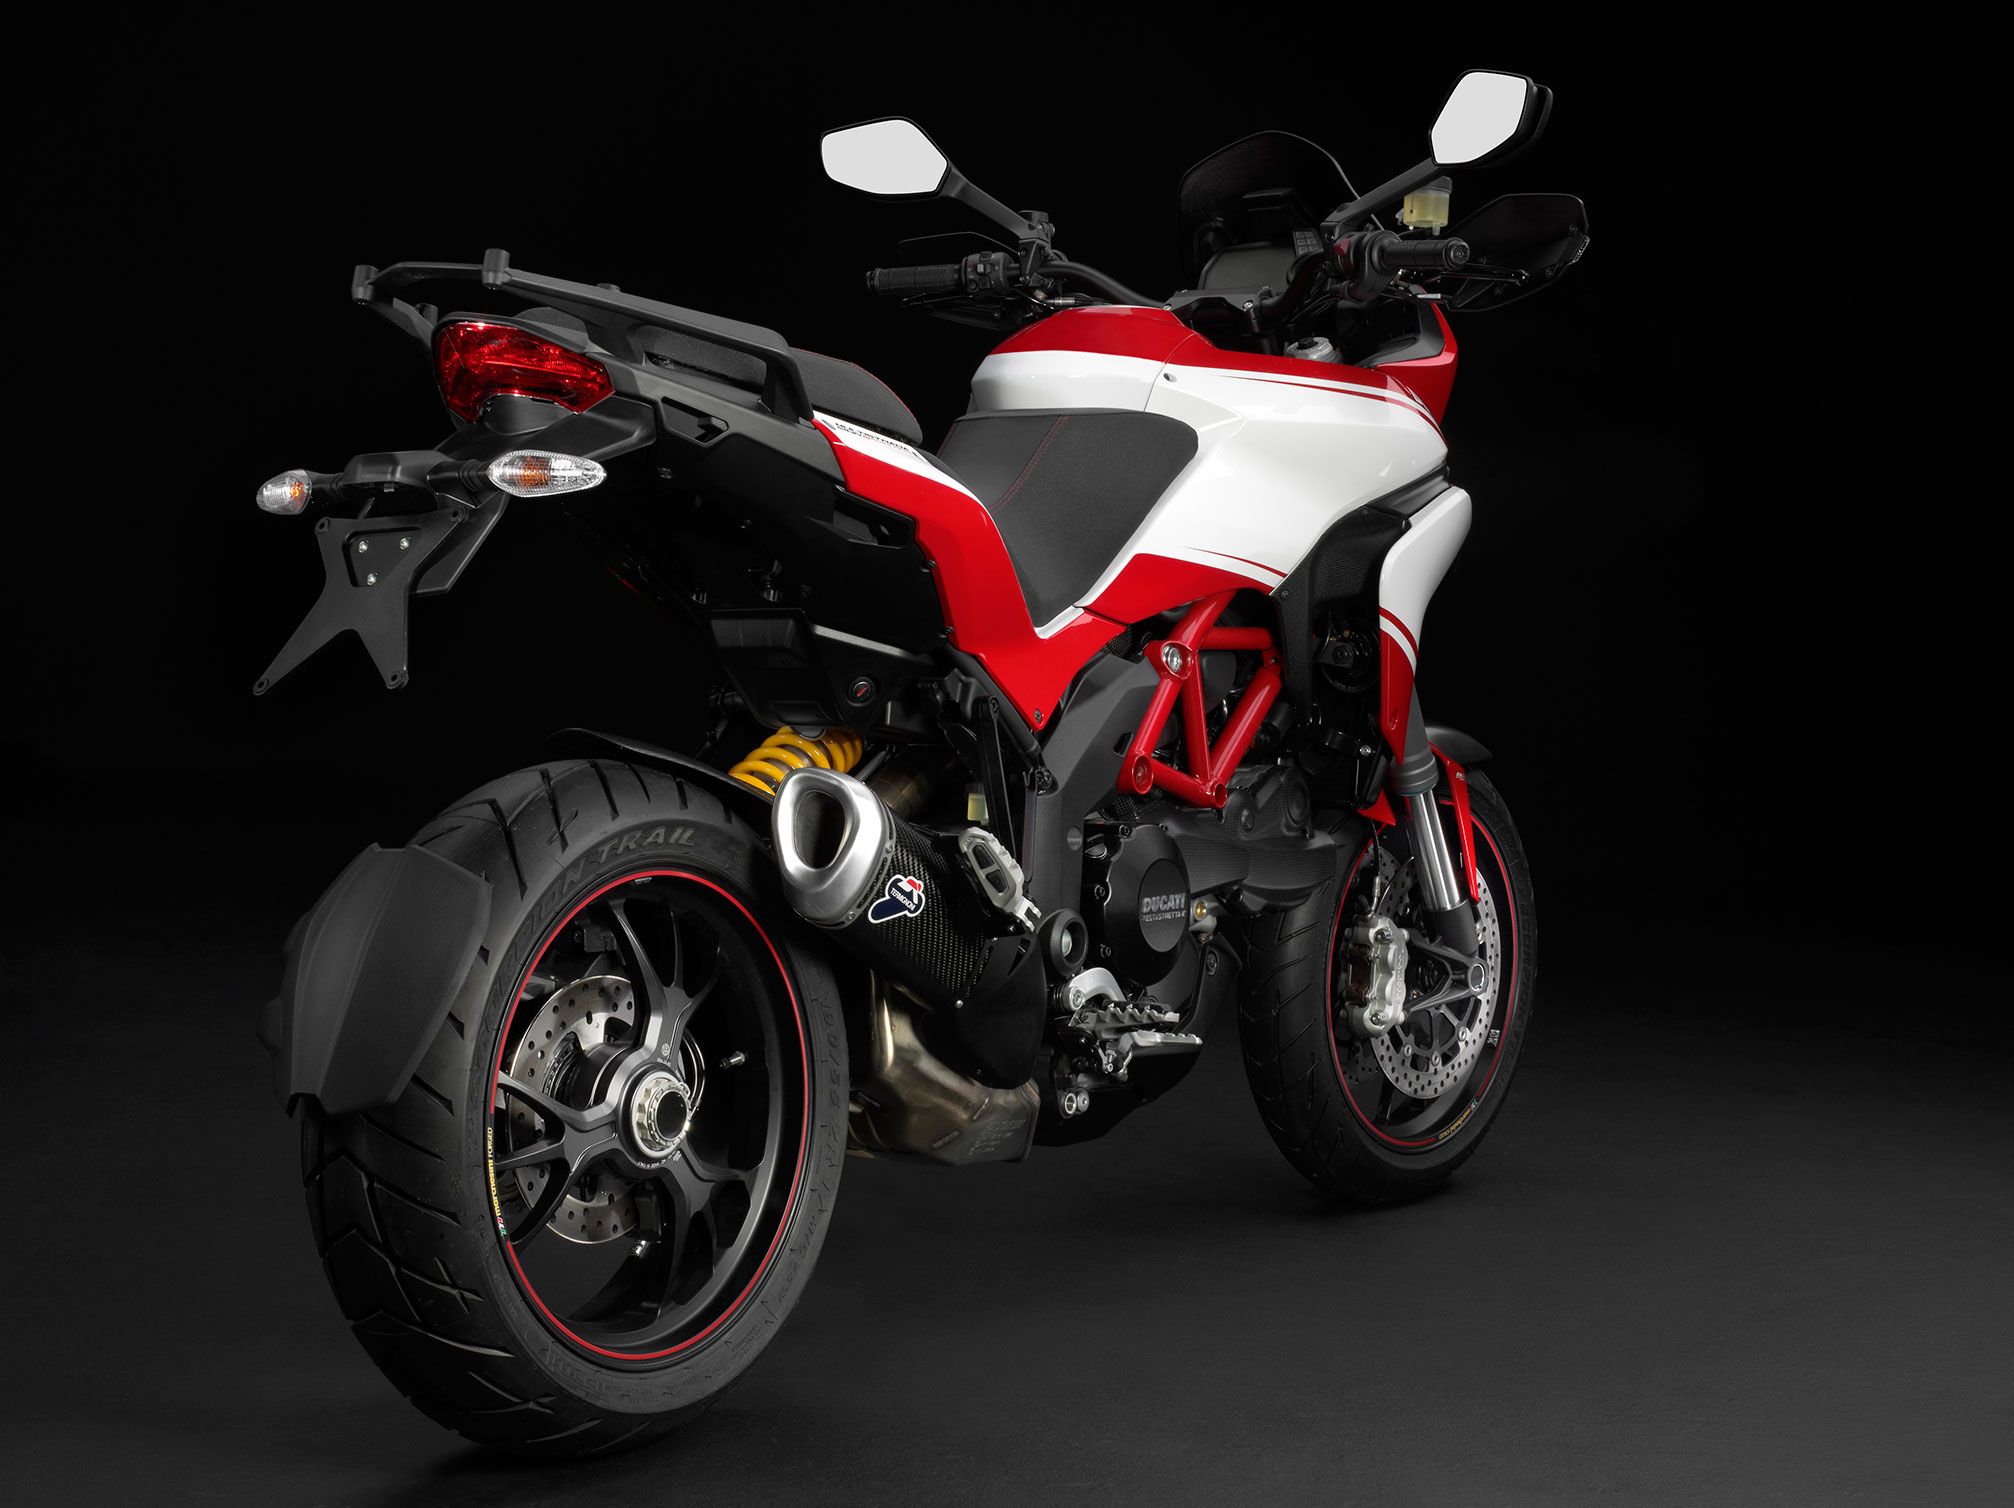 Ducati Multistrada 1200 S Pikes Peak Edition 2013 images #80017